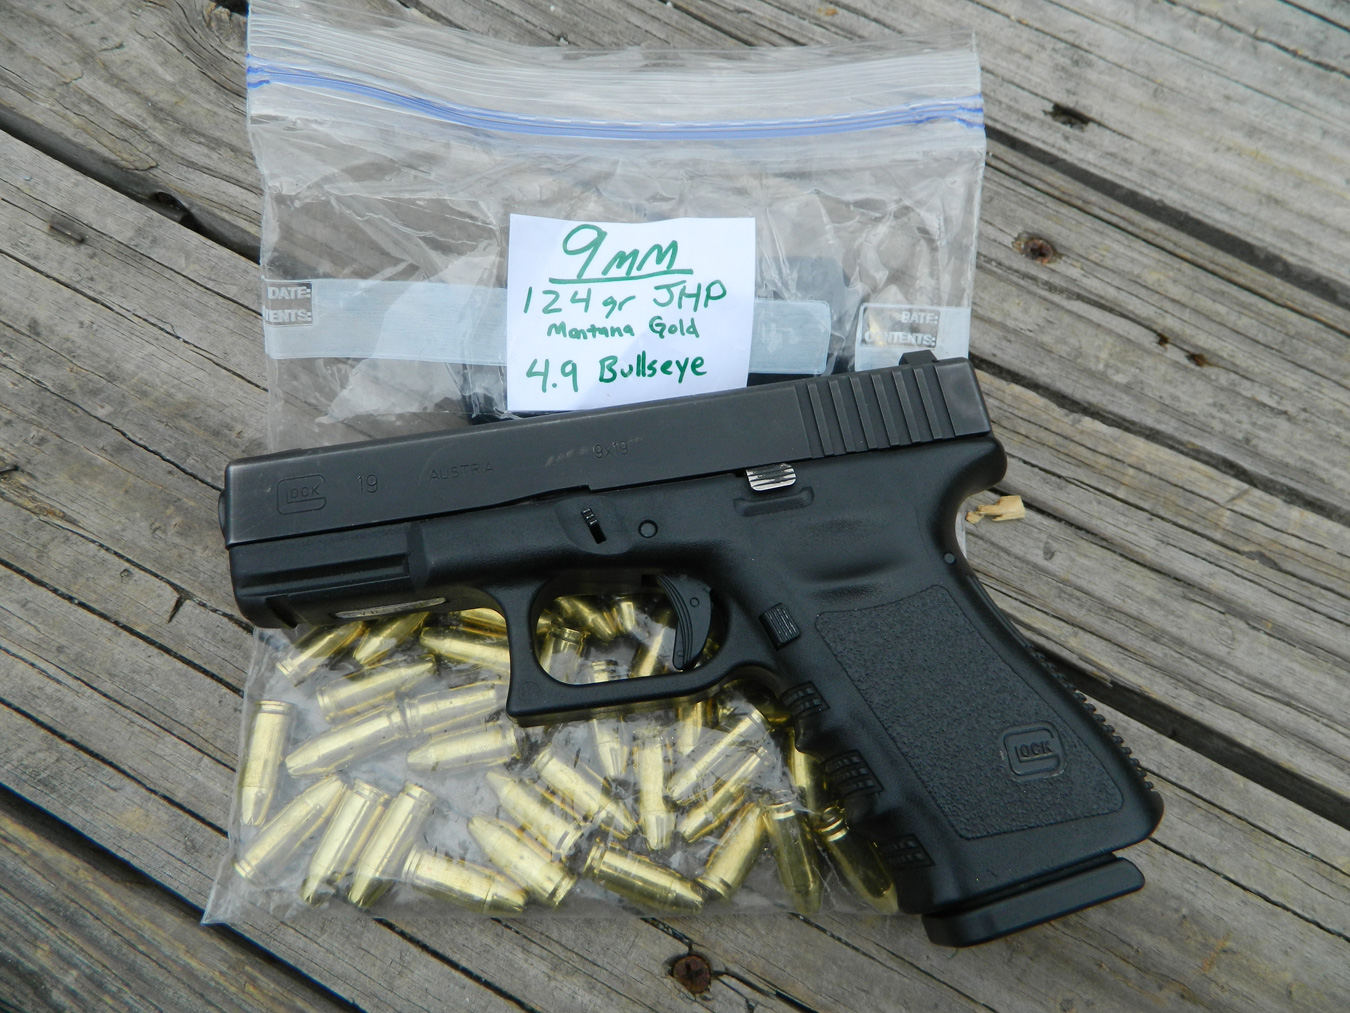 Glock 19 pistol on a Ziplock bag filled with ammunition